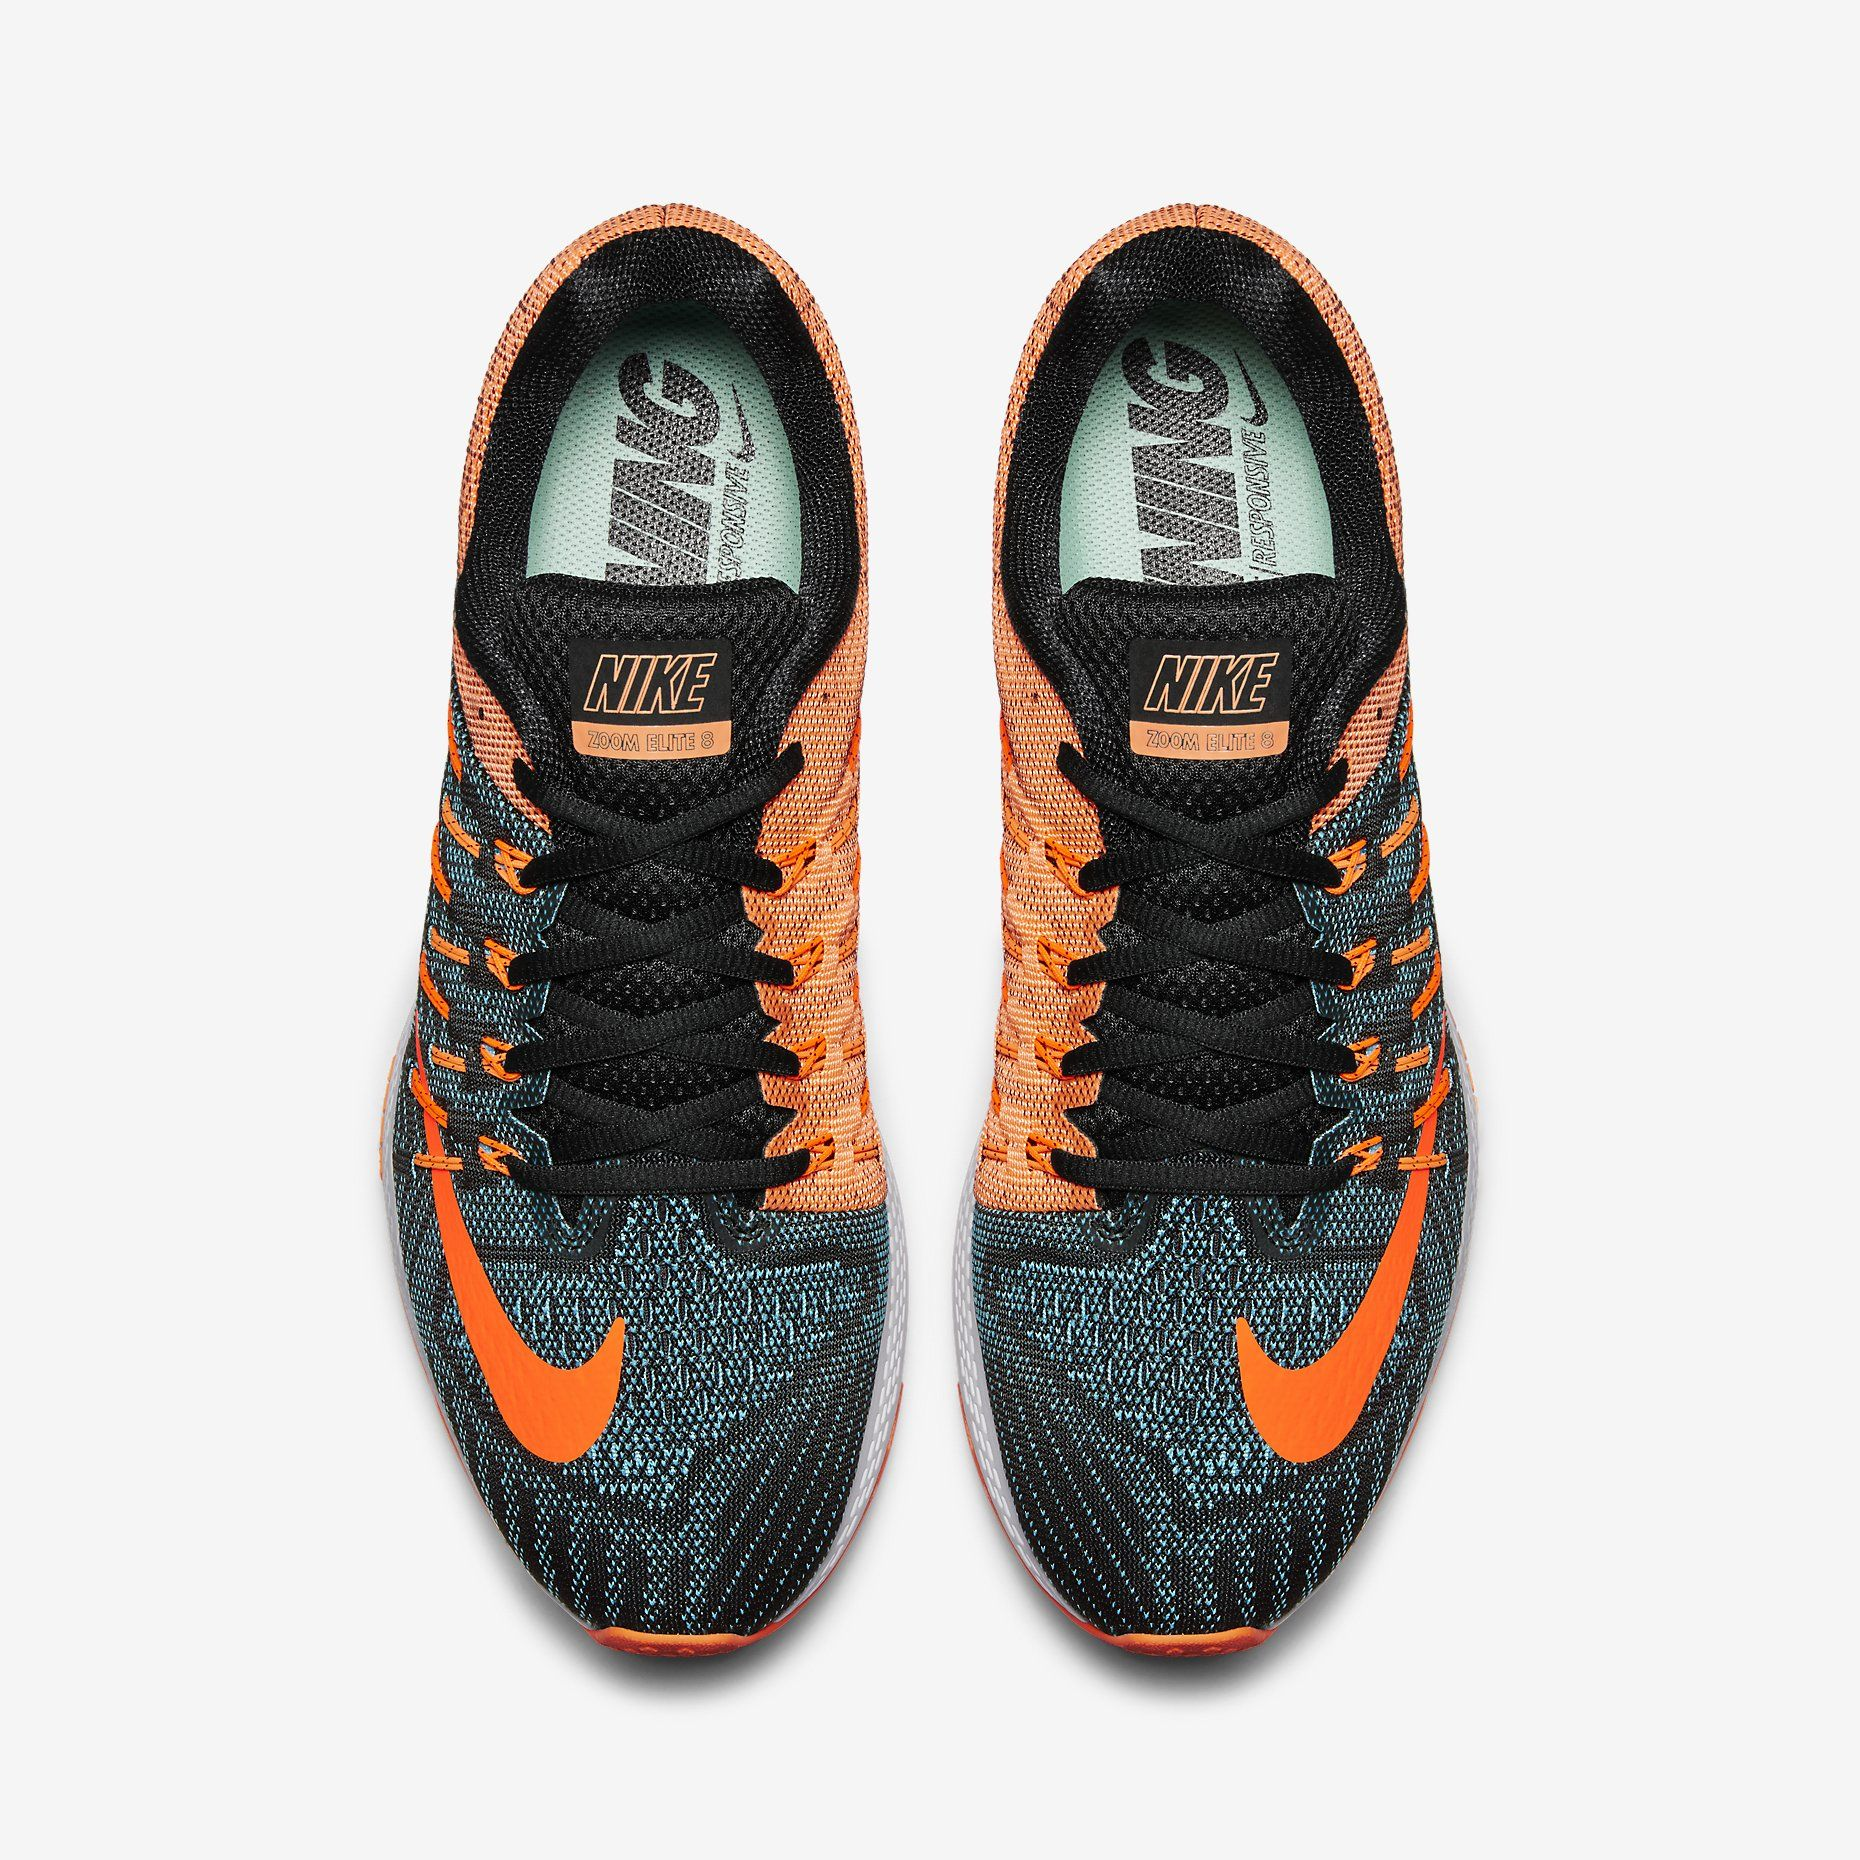 info for 838a9 e36a7 Nike Air Zoom Elite 8 Men's Running Shoe. Nike Store | Shoes ...